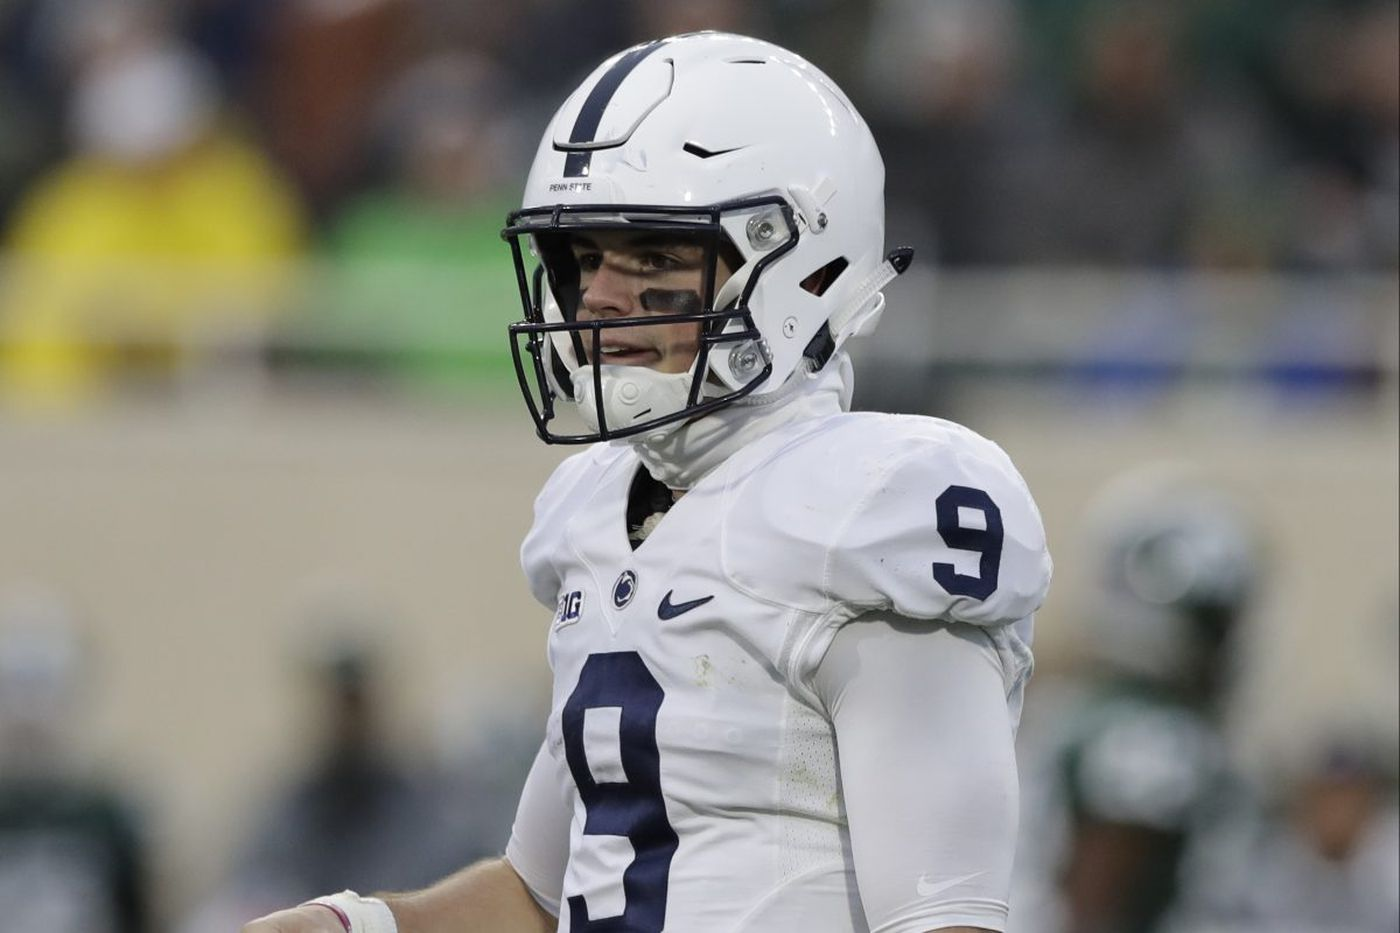 Trace McSorley's record-setting day overshadowed by turnovers